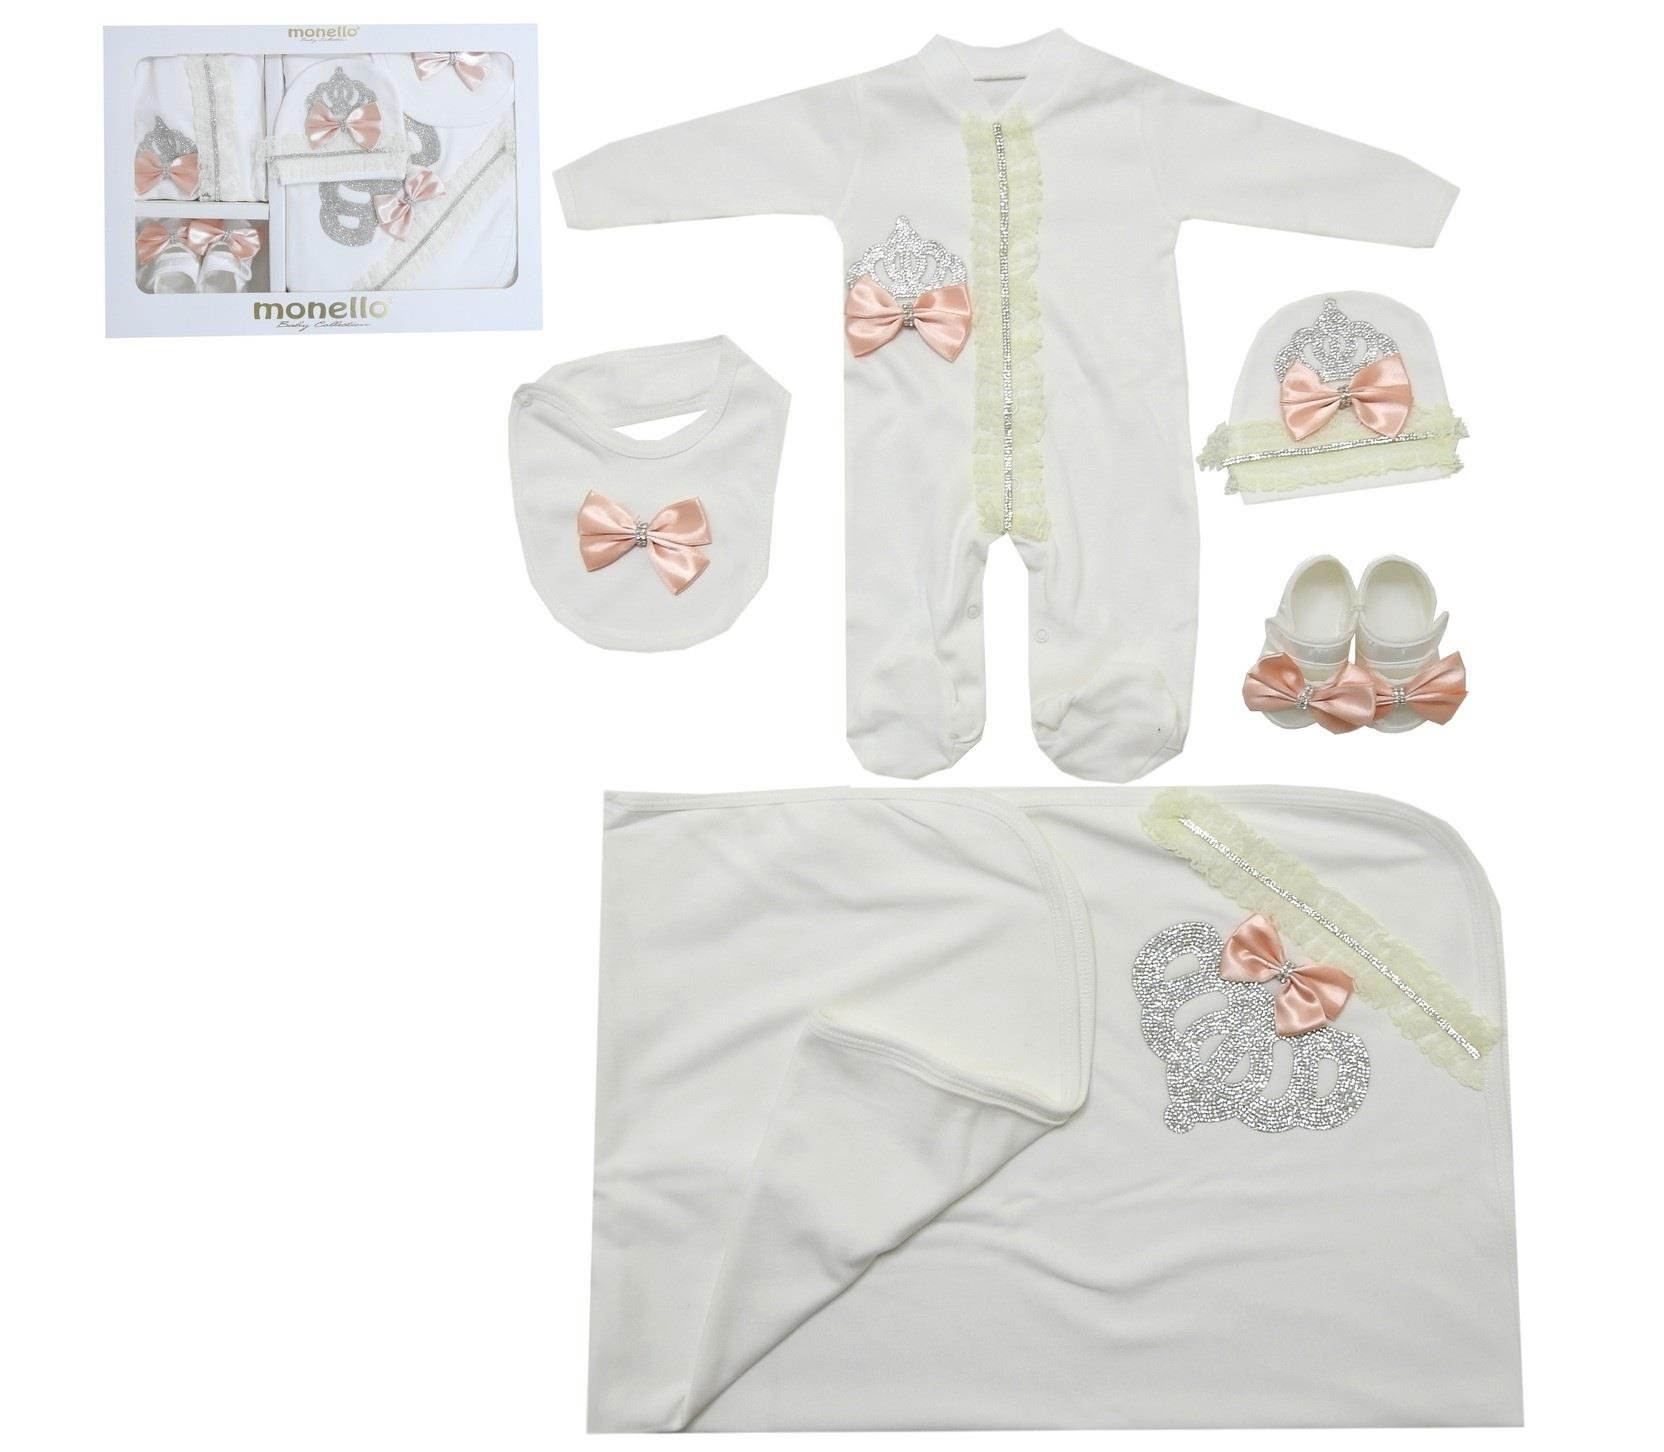 WHOLESALE NEWBORN SET 5 PIECES IN PACKAGE